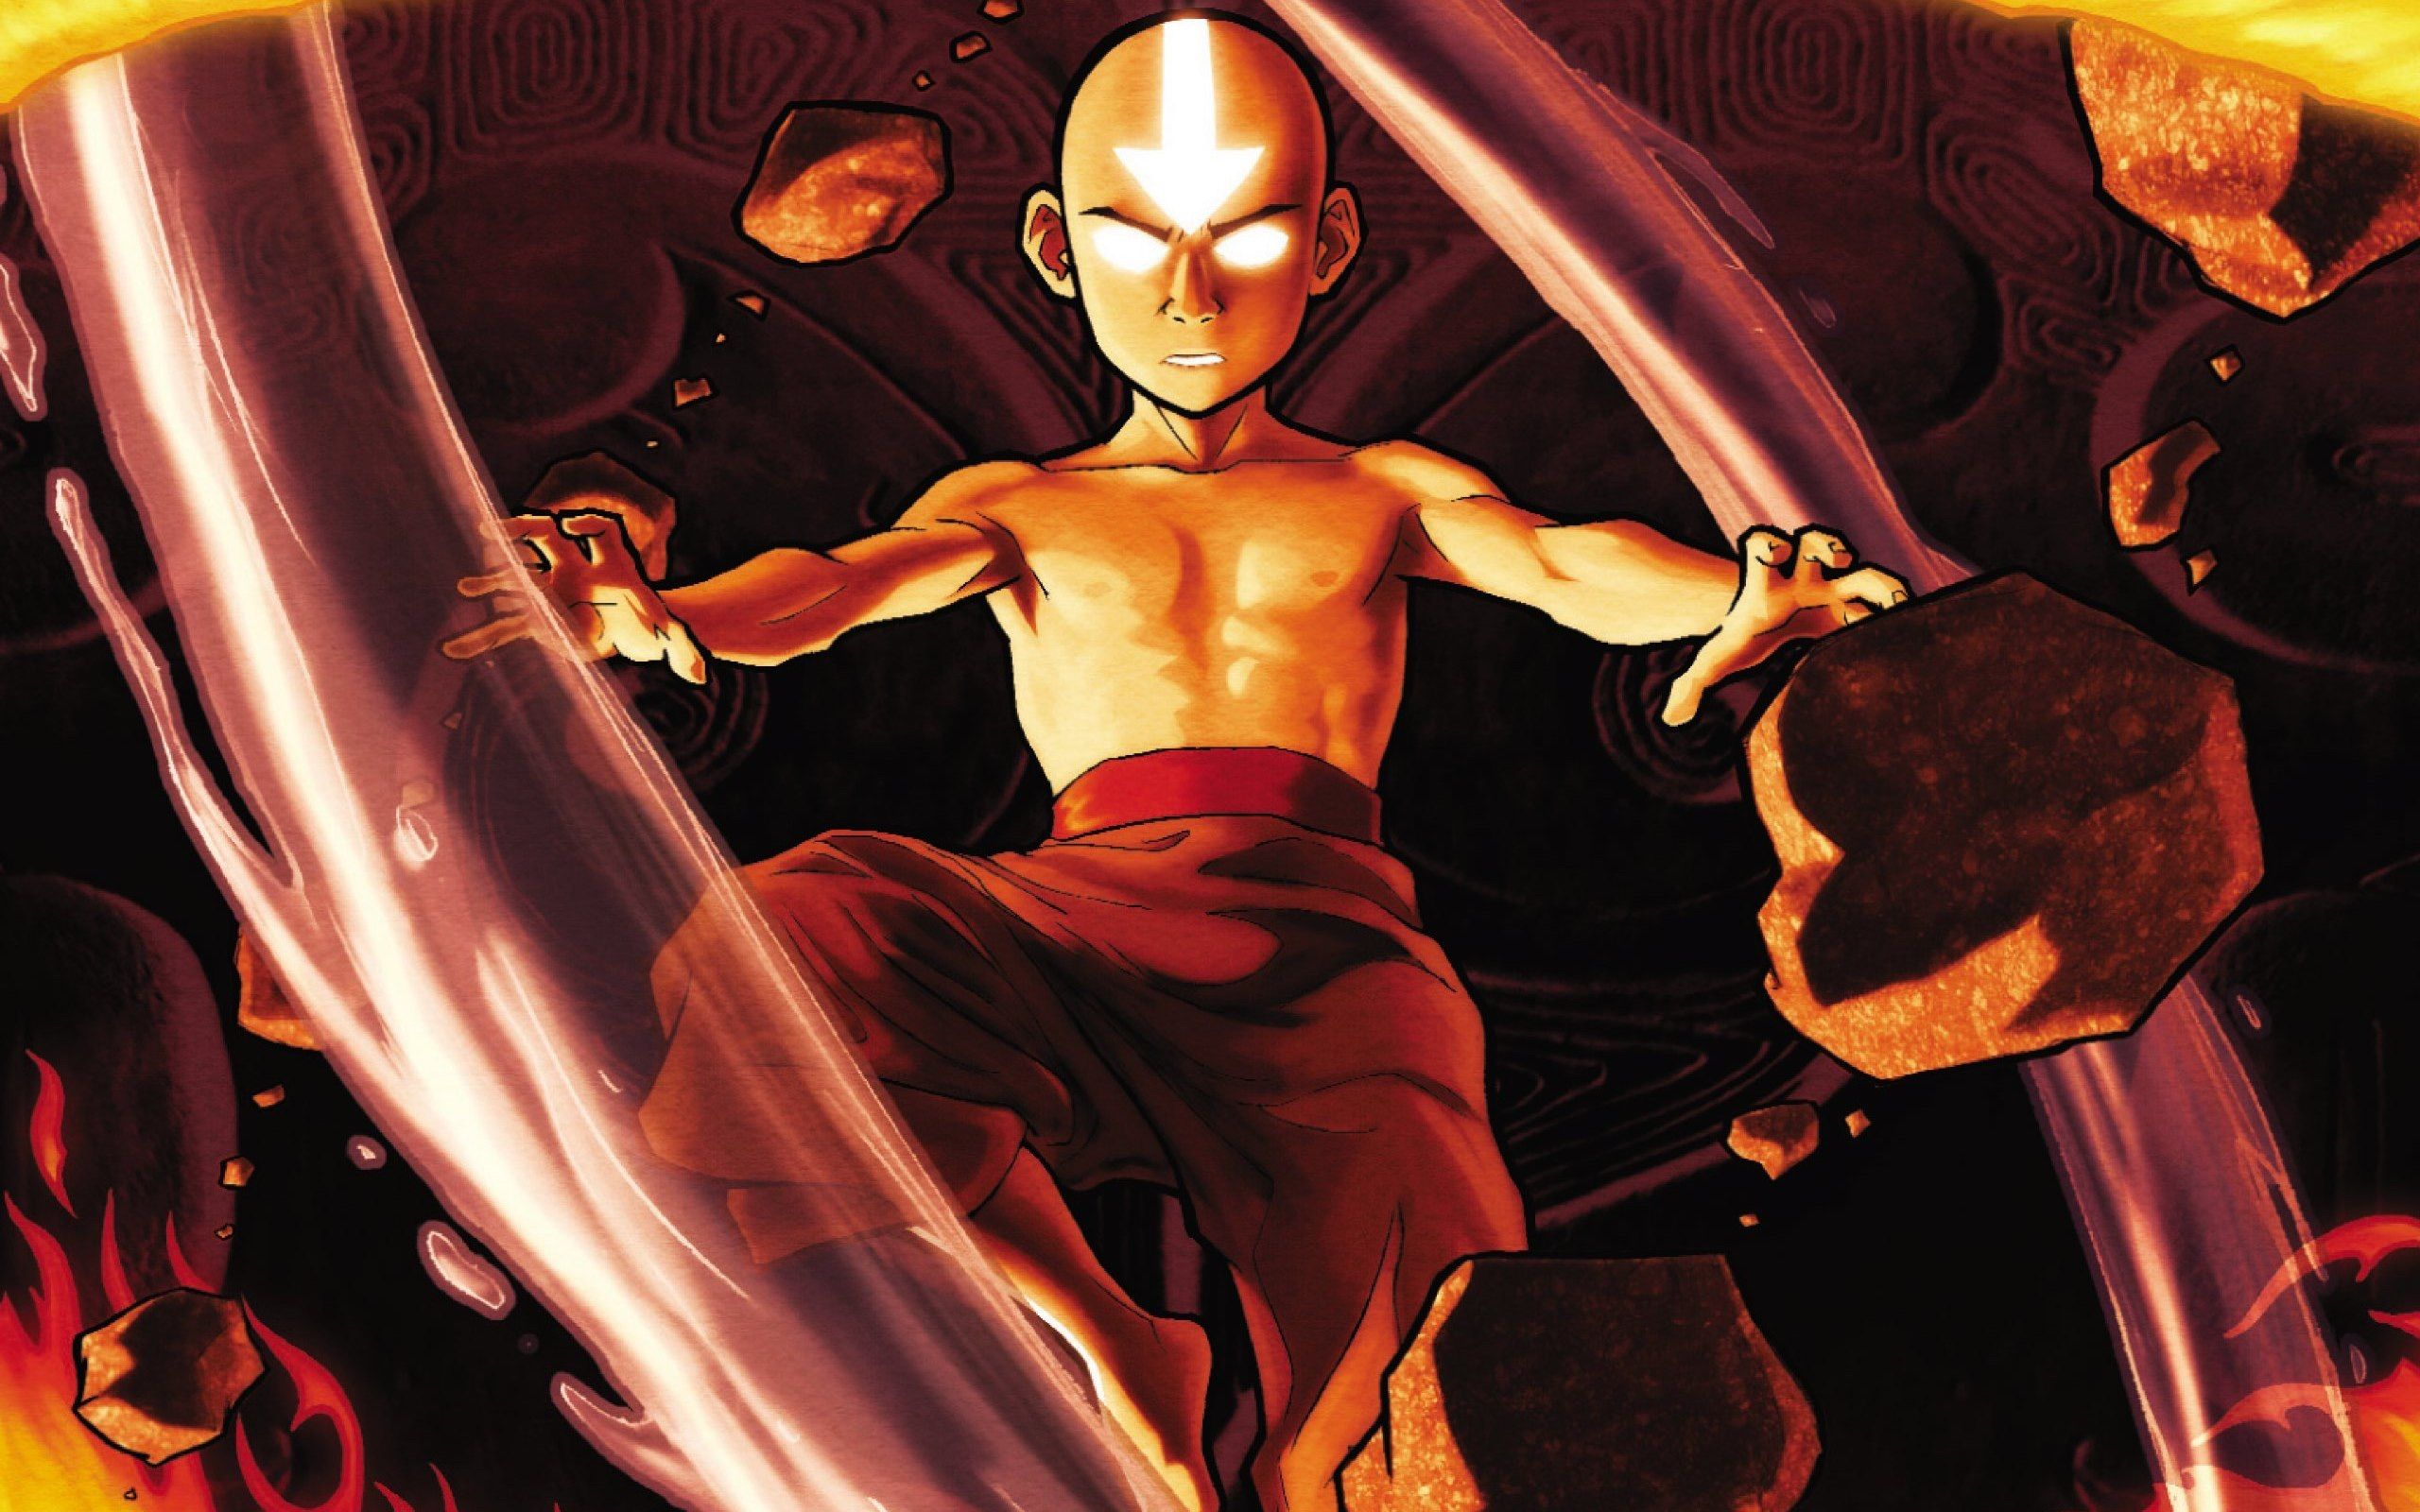 I M Currently Hyped So Have Some Wallpapers Avatar The Last Airbender Avatar Aang The Last Airbender Desktop wallpaper avatar last airbender